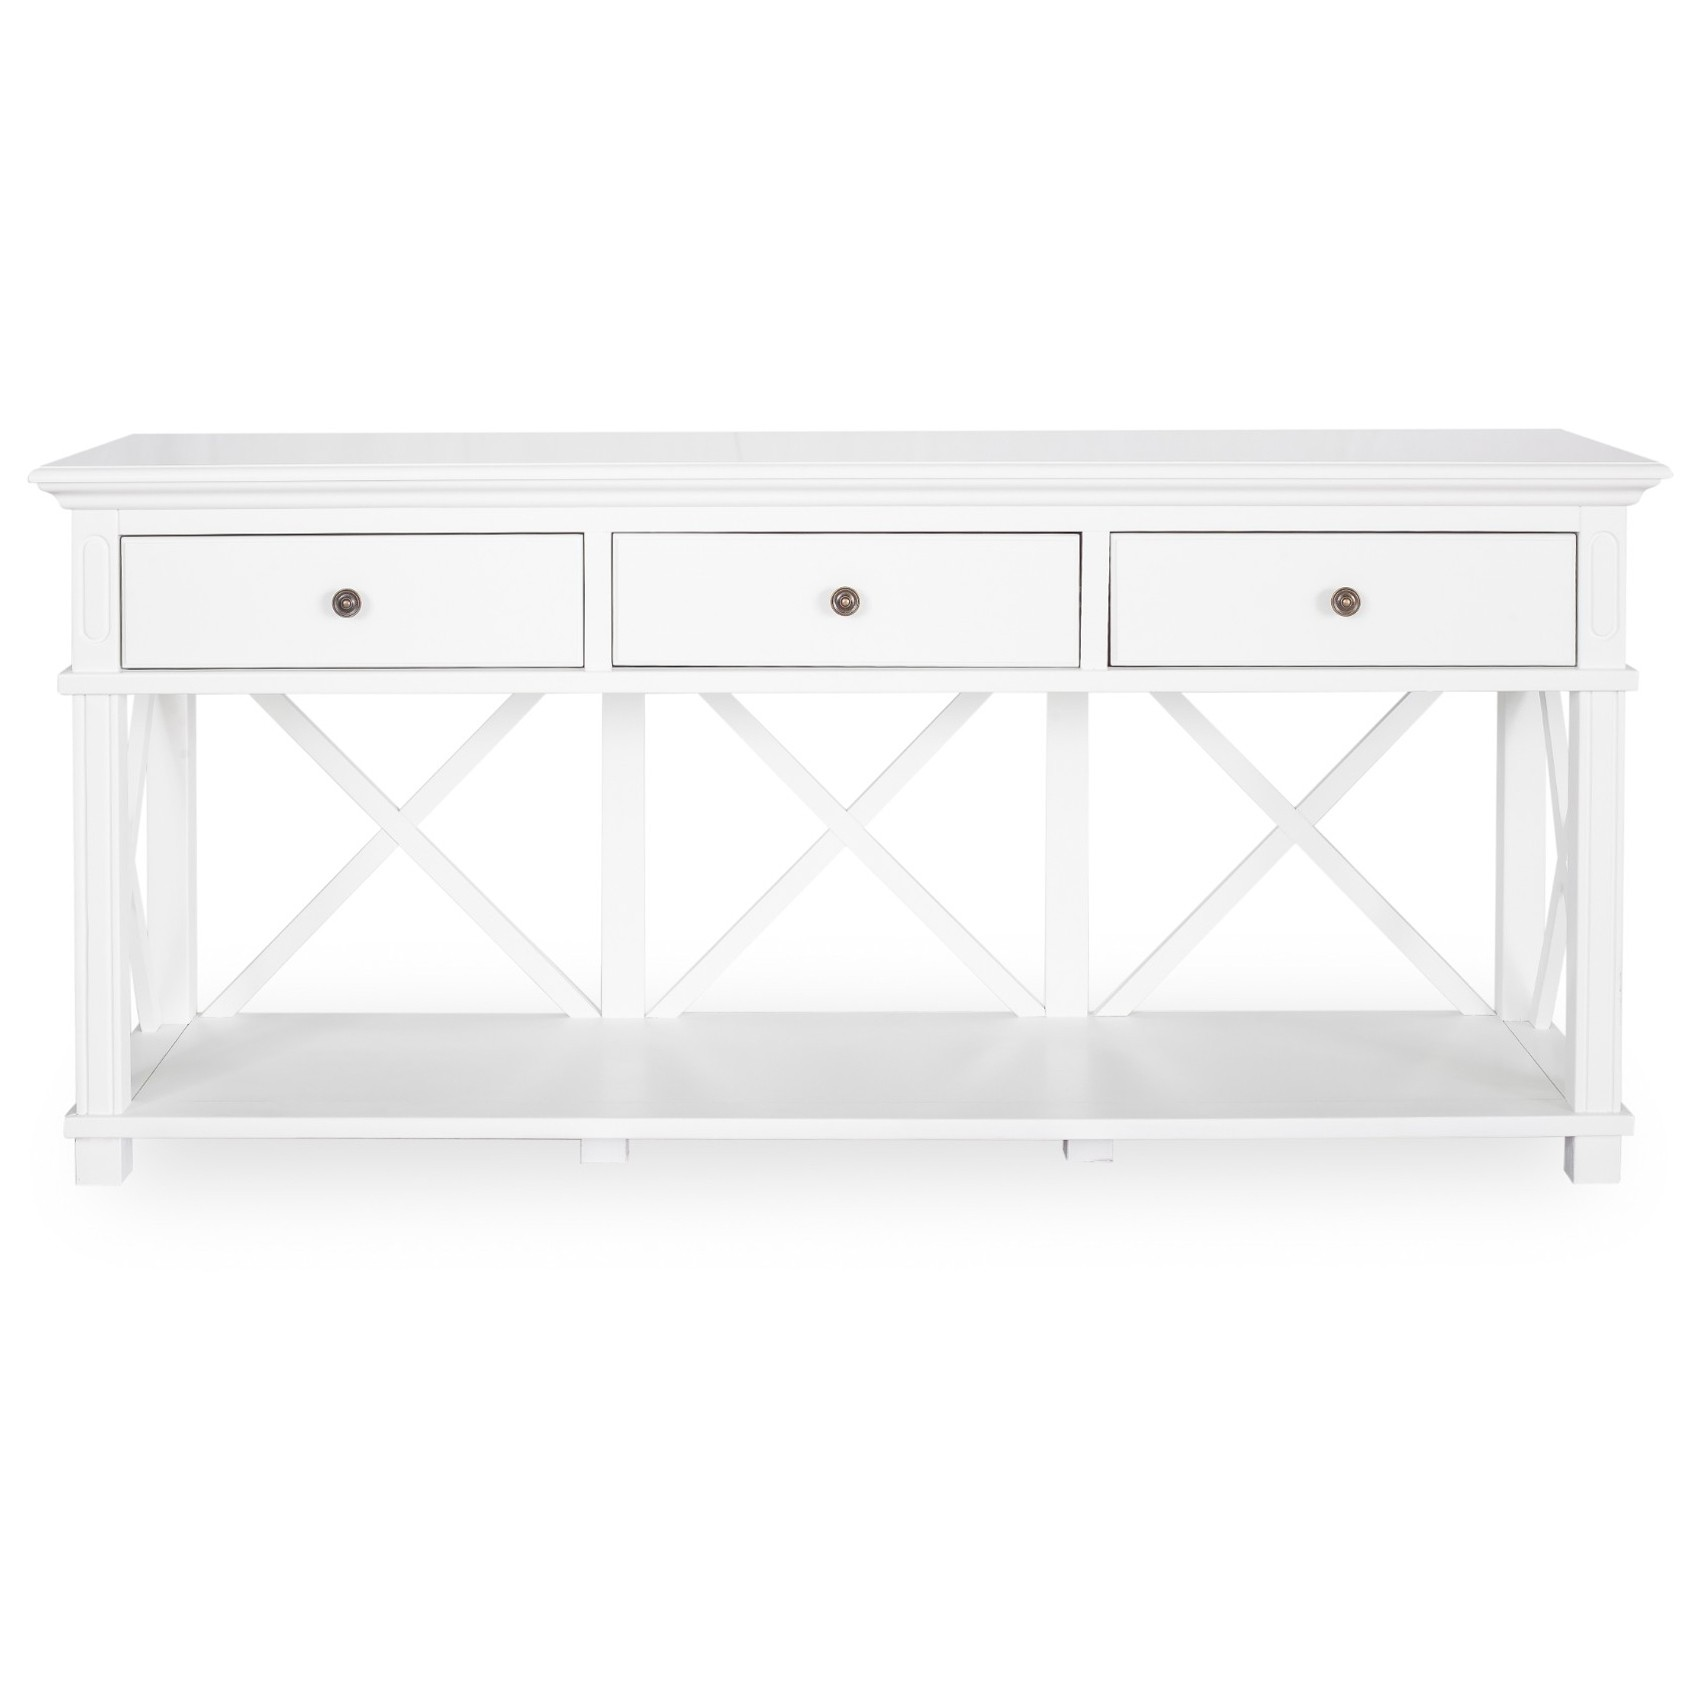 Sorrento Wooden Console Table, 3 Drawer, 190cm, White